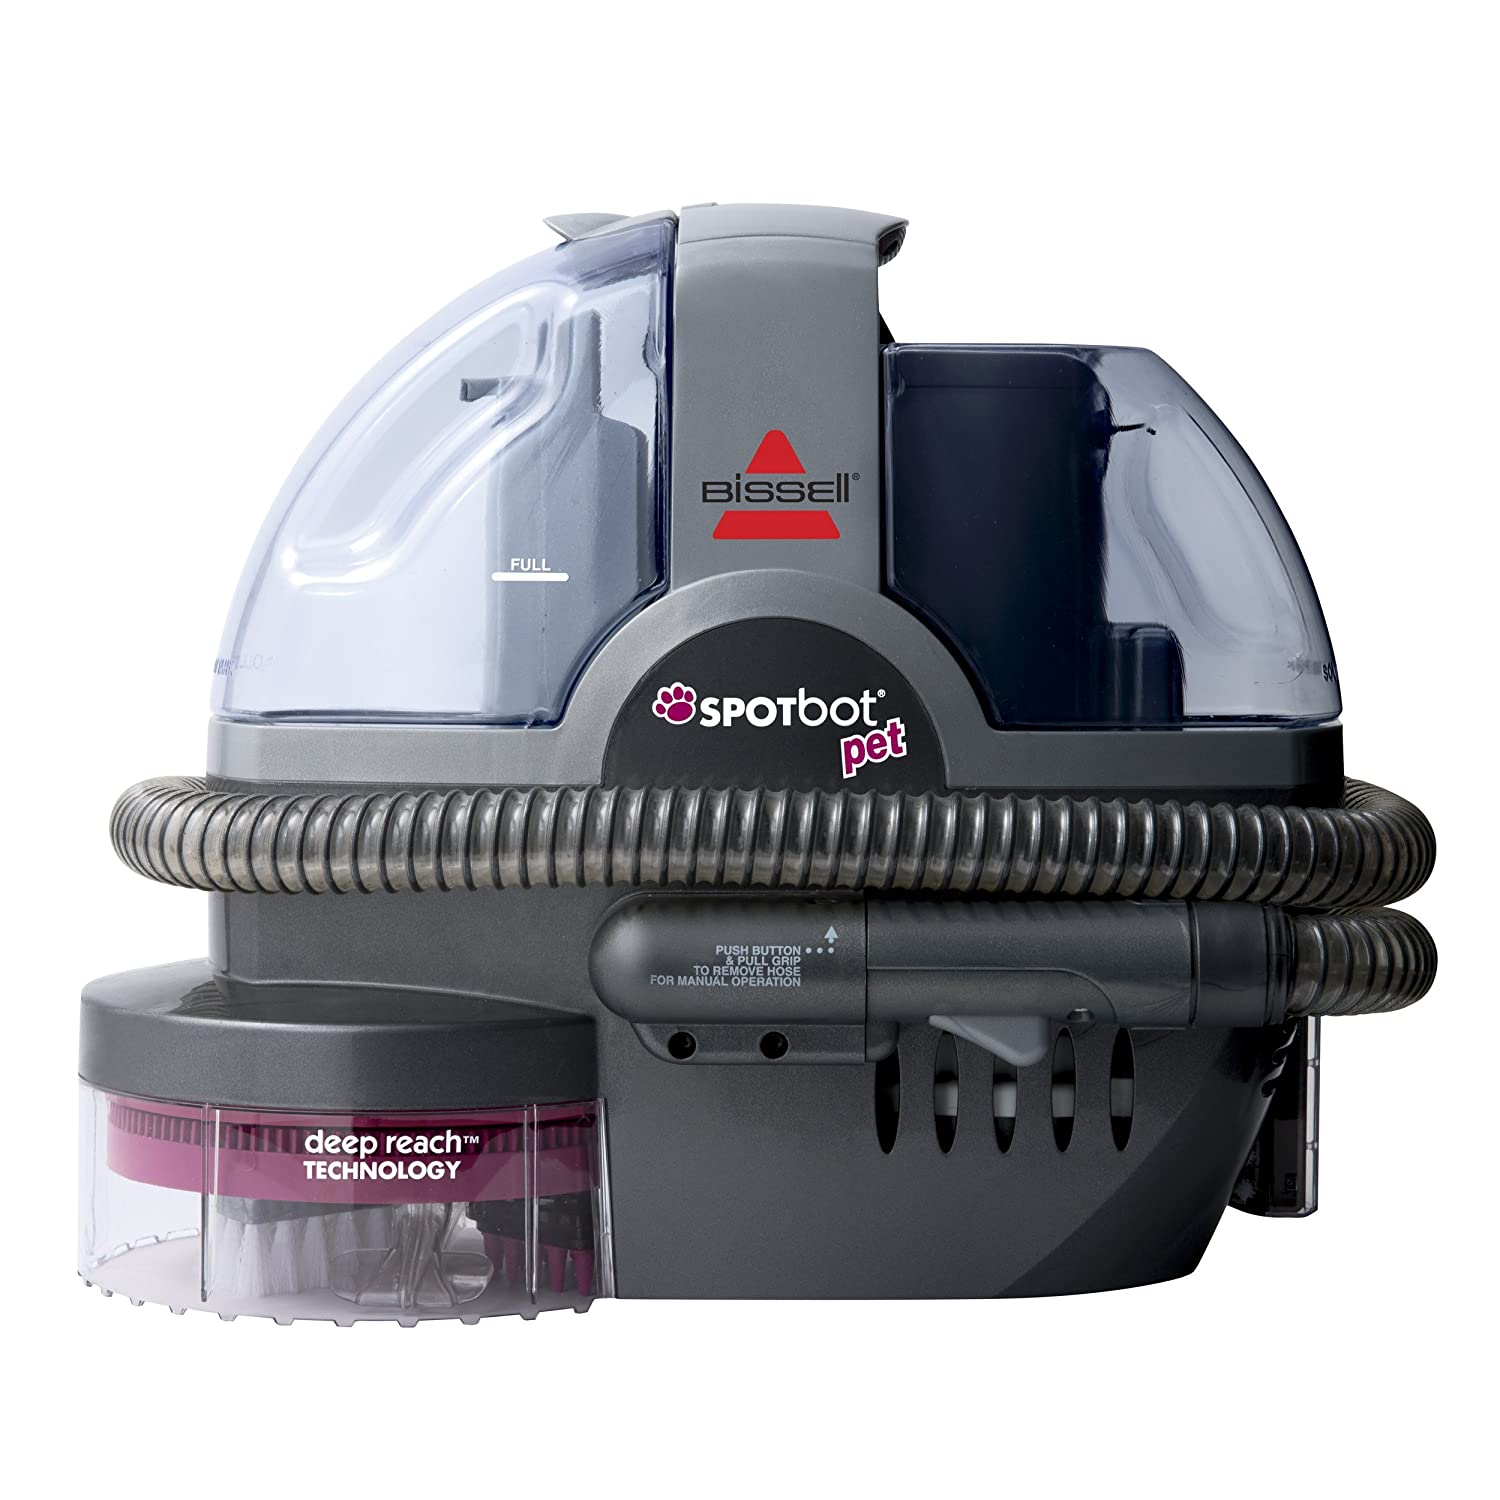 Bissell Spotbot Pet Handsfree Spot And Stain Portable Carpet 33n8a Renewed